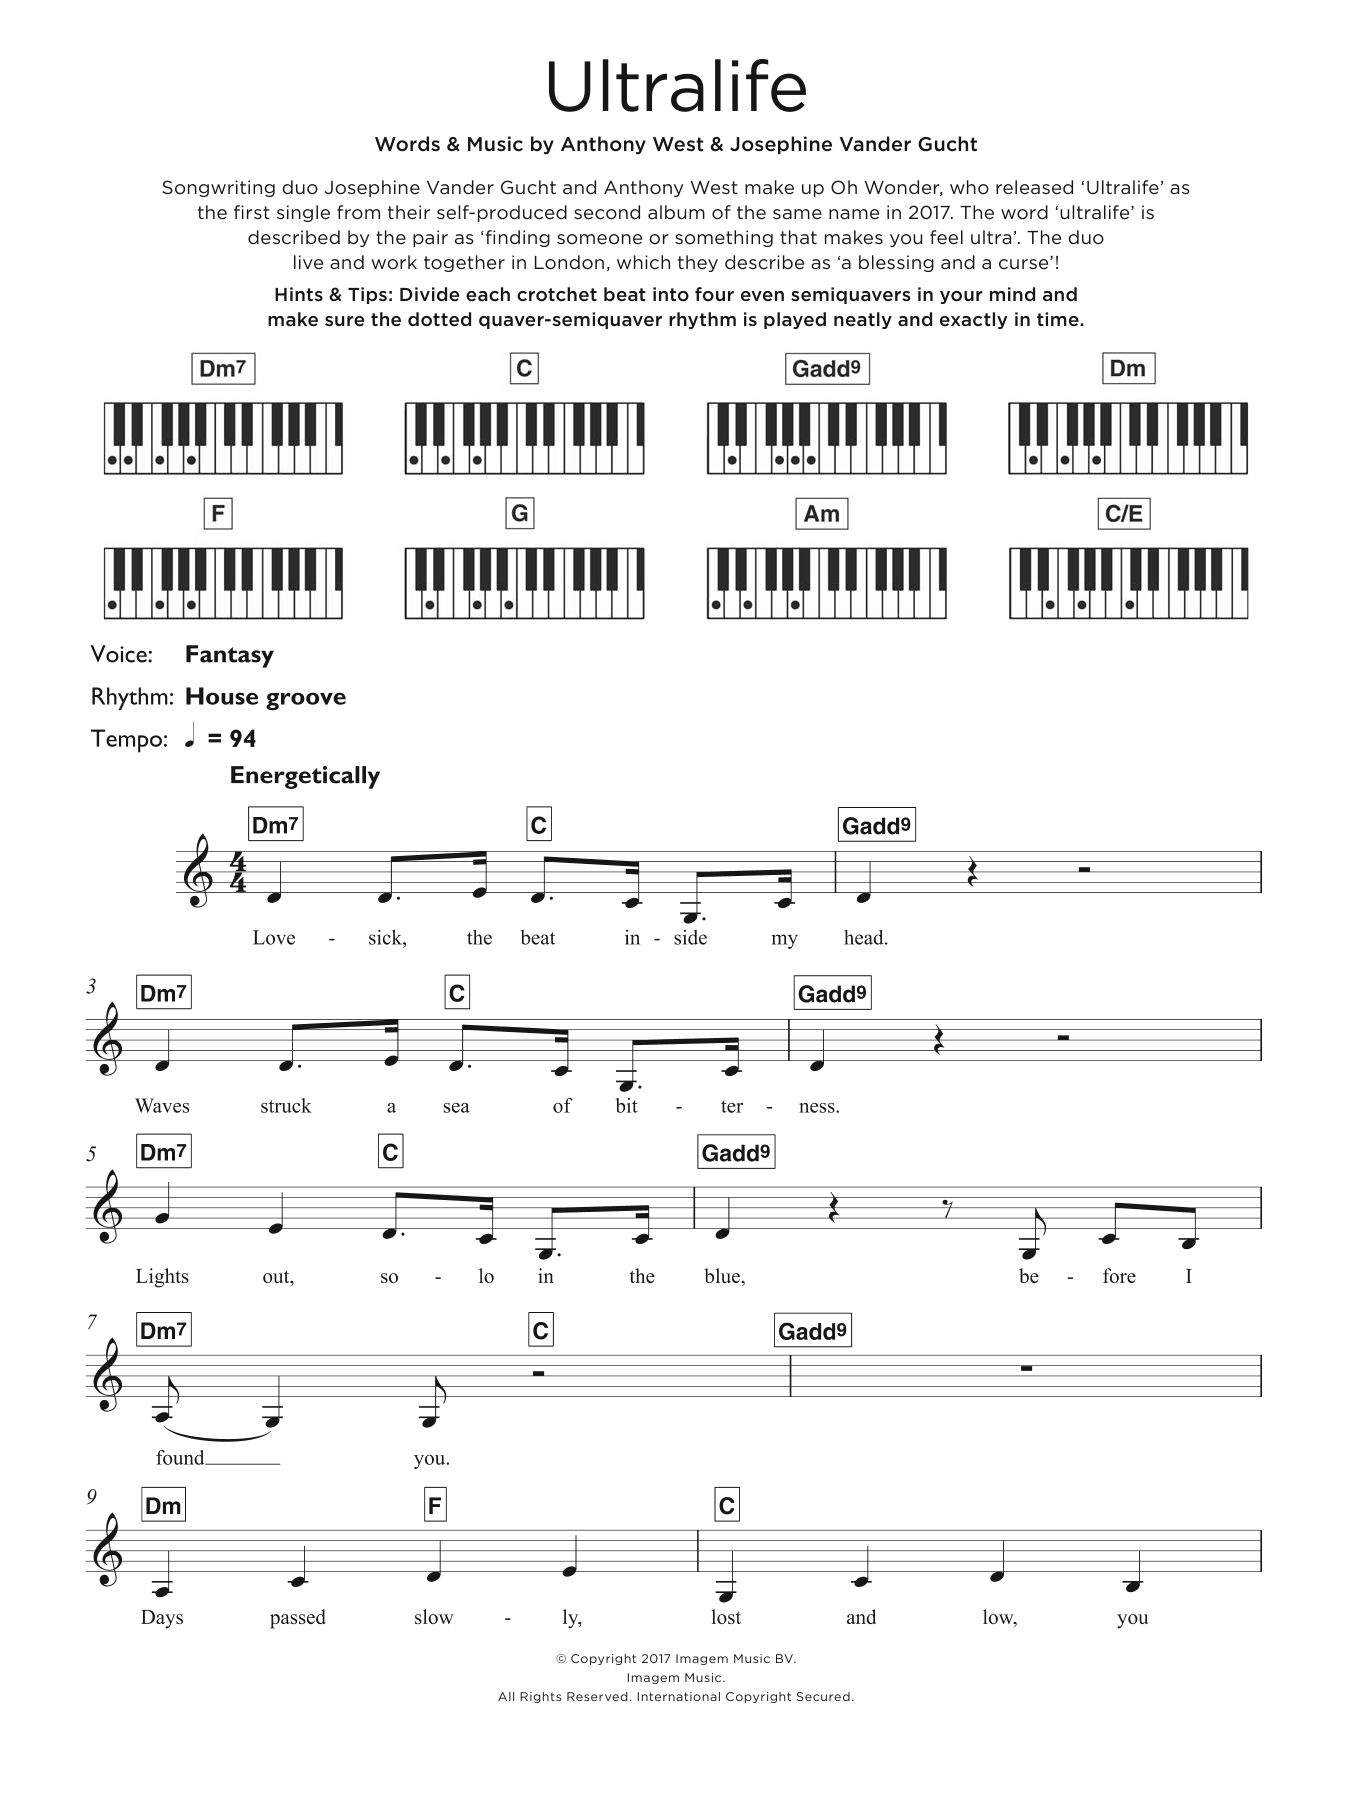 Ultralife Sheet Music